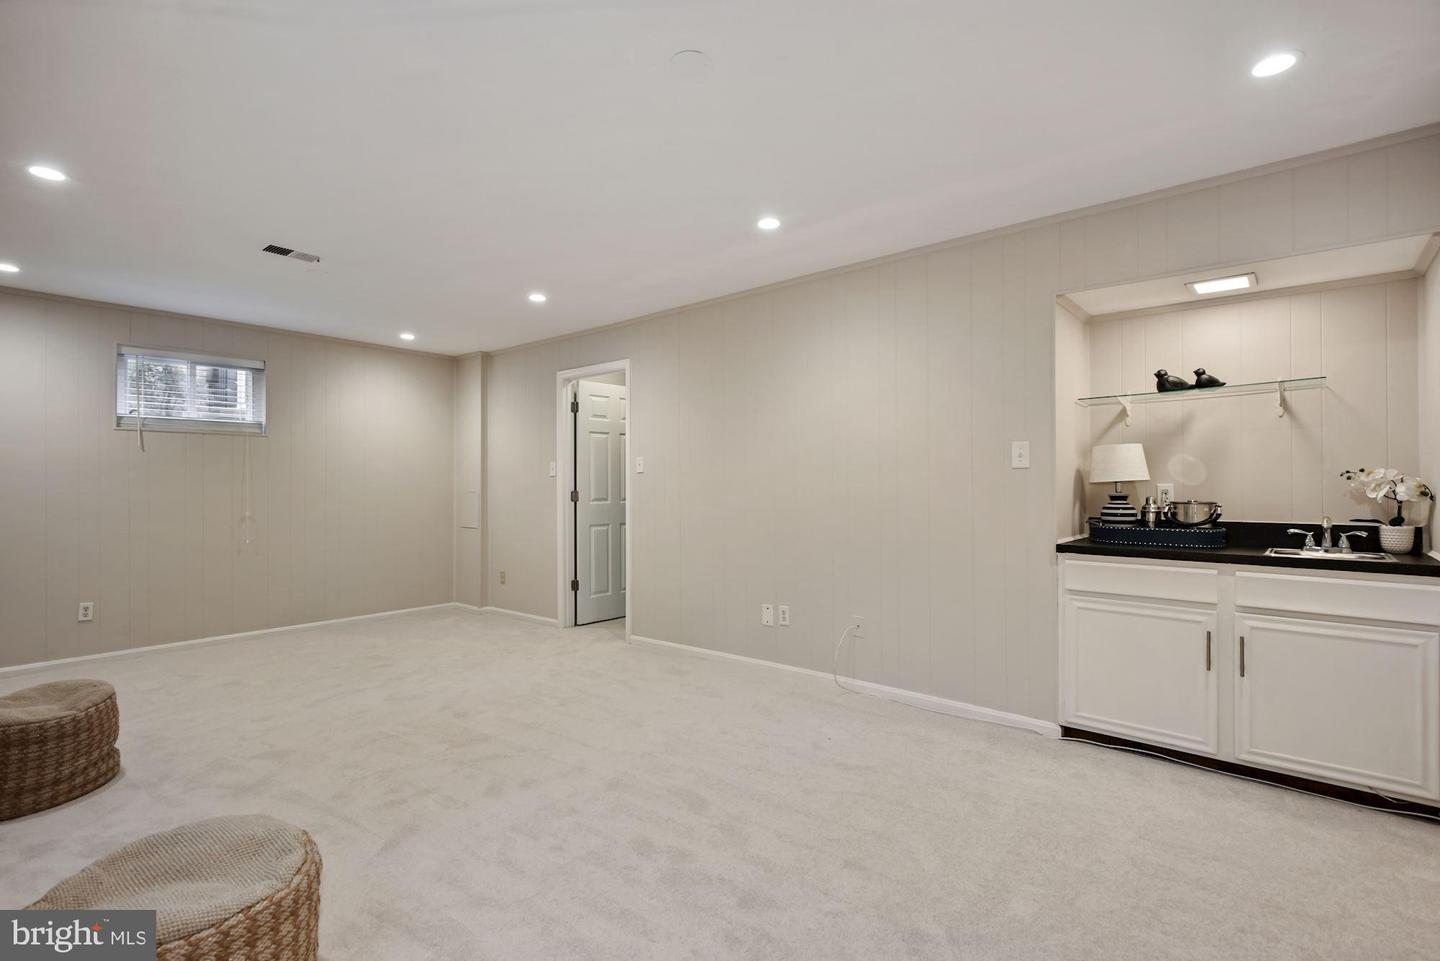 9313 Millbranch Pl Finished Lower Level